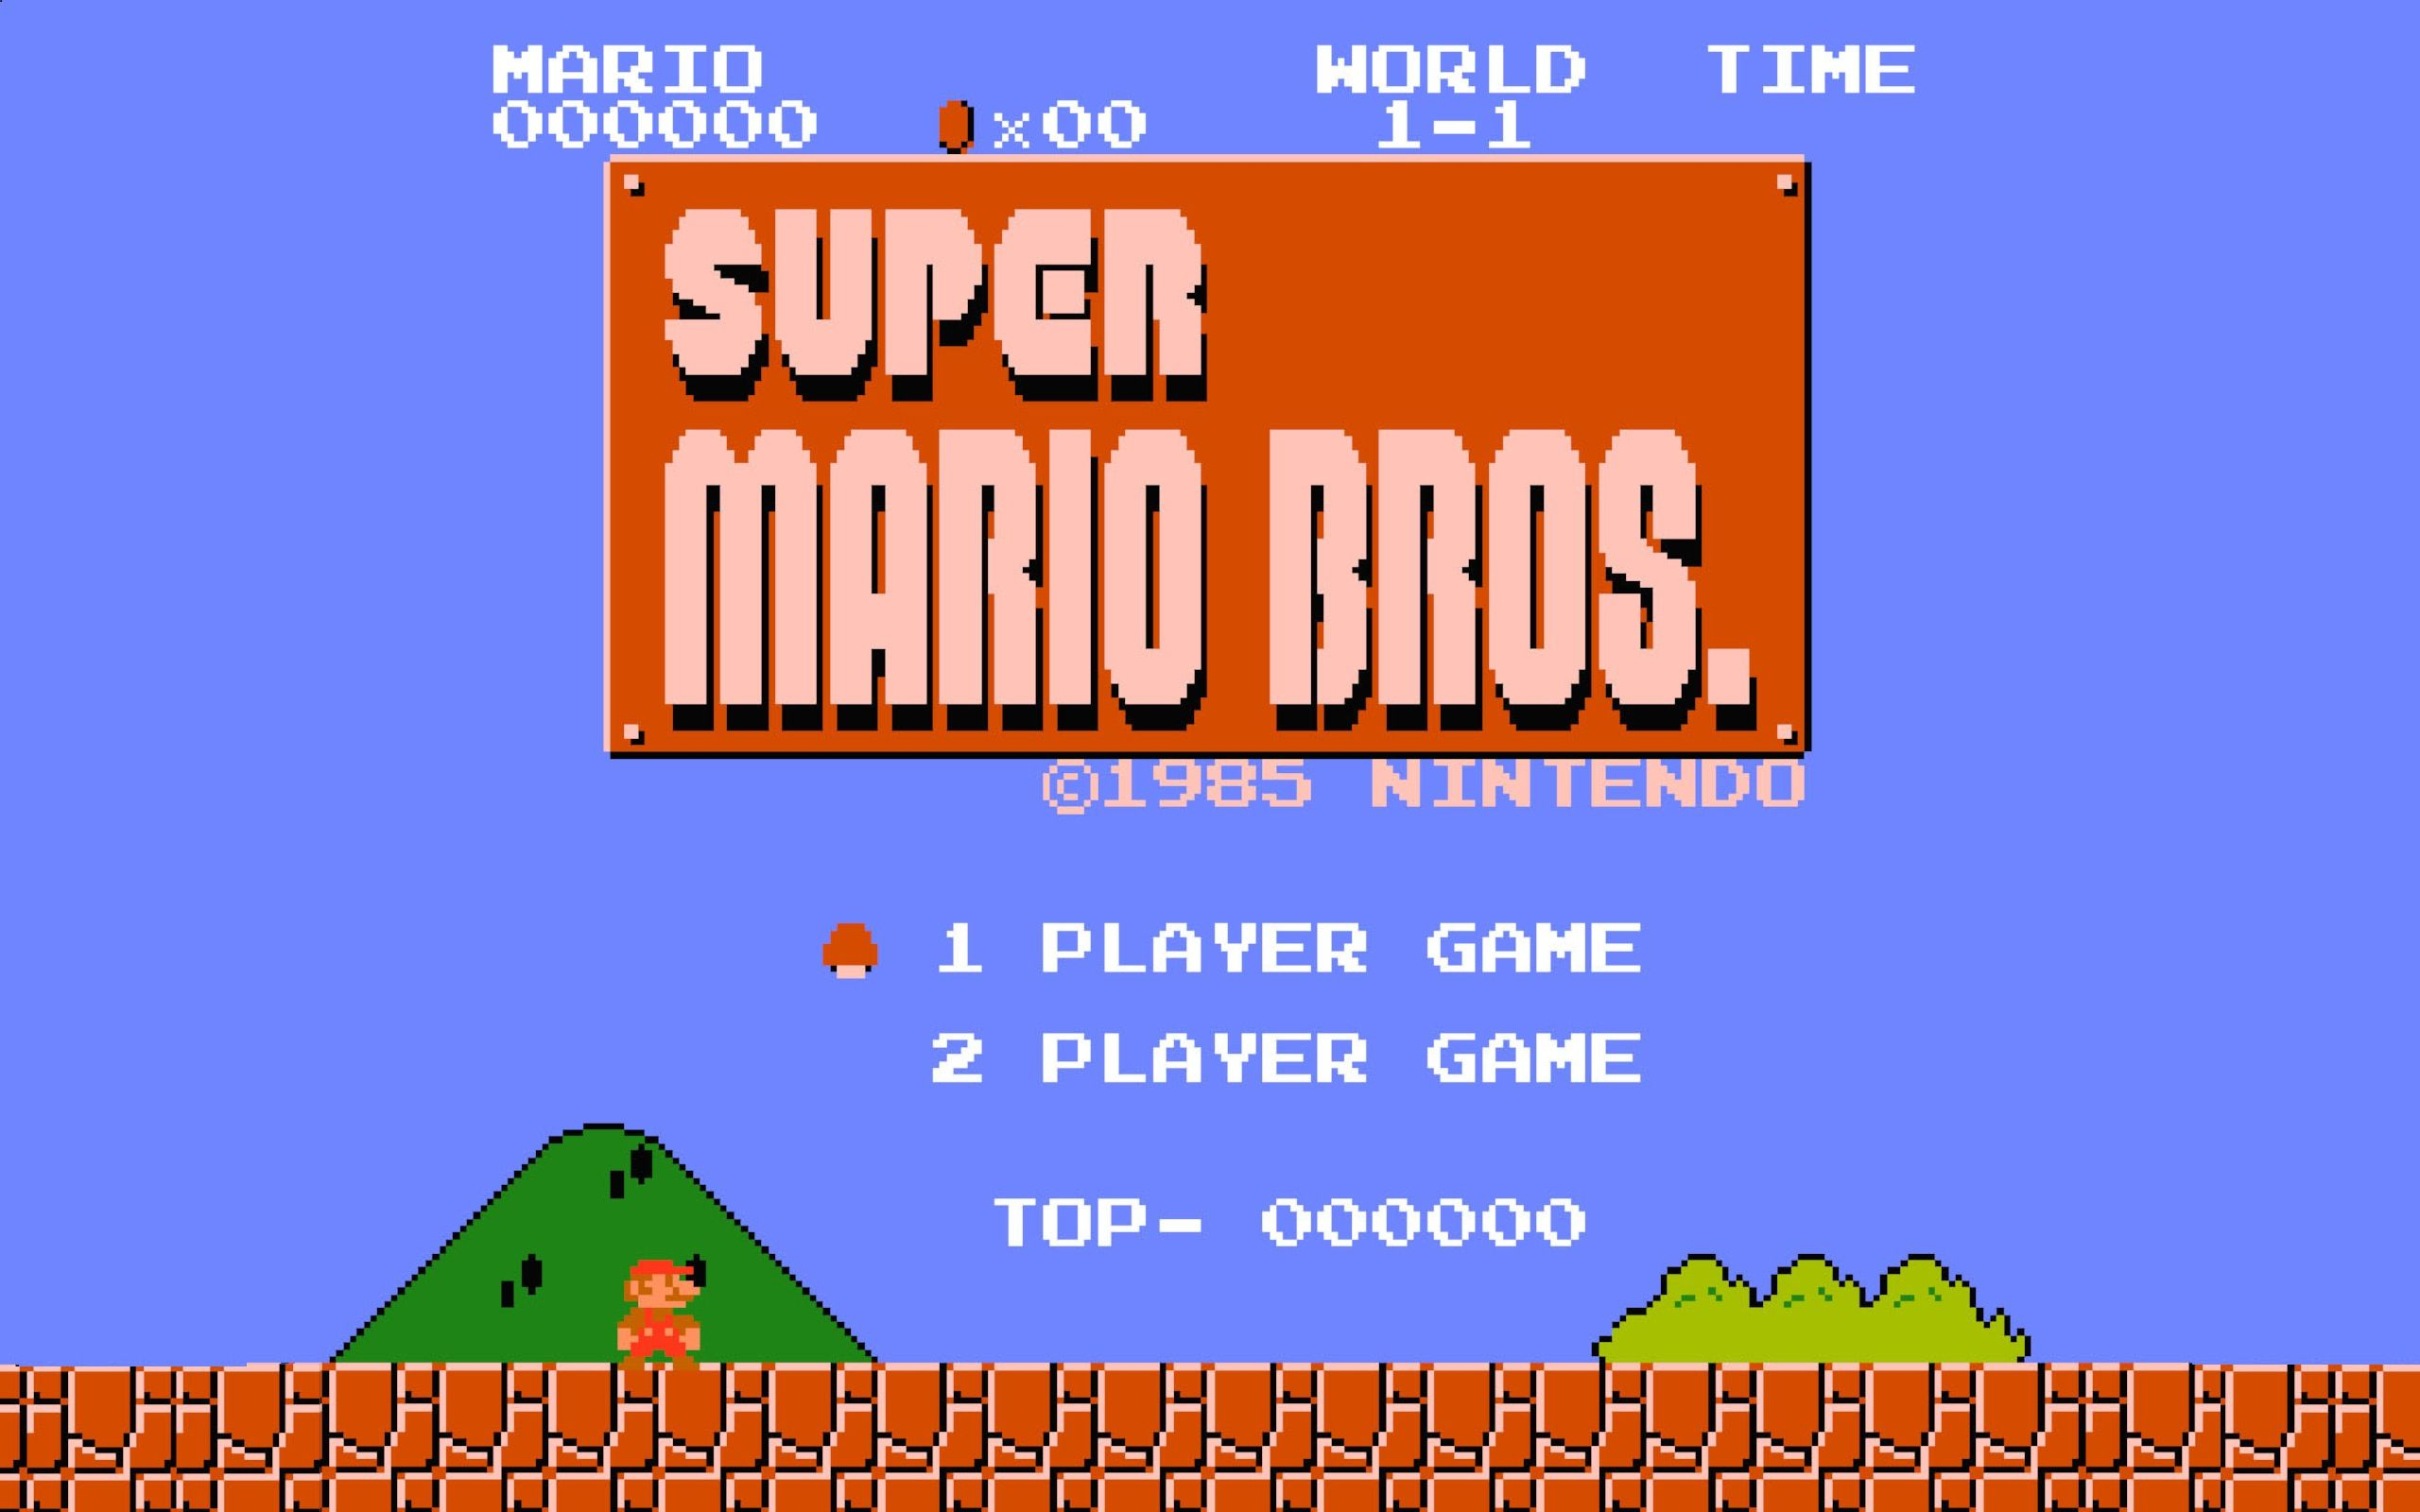 Nintendo Super Mario Bros Retro Games Video Games Wallpaper